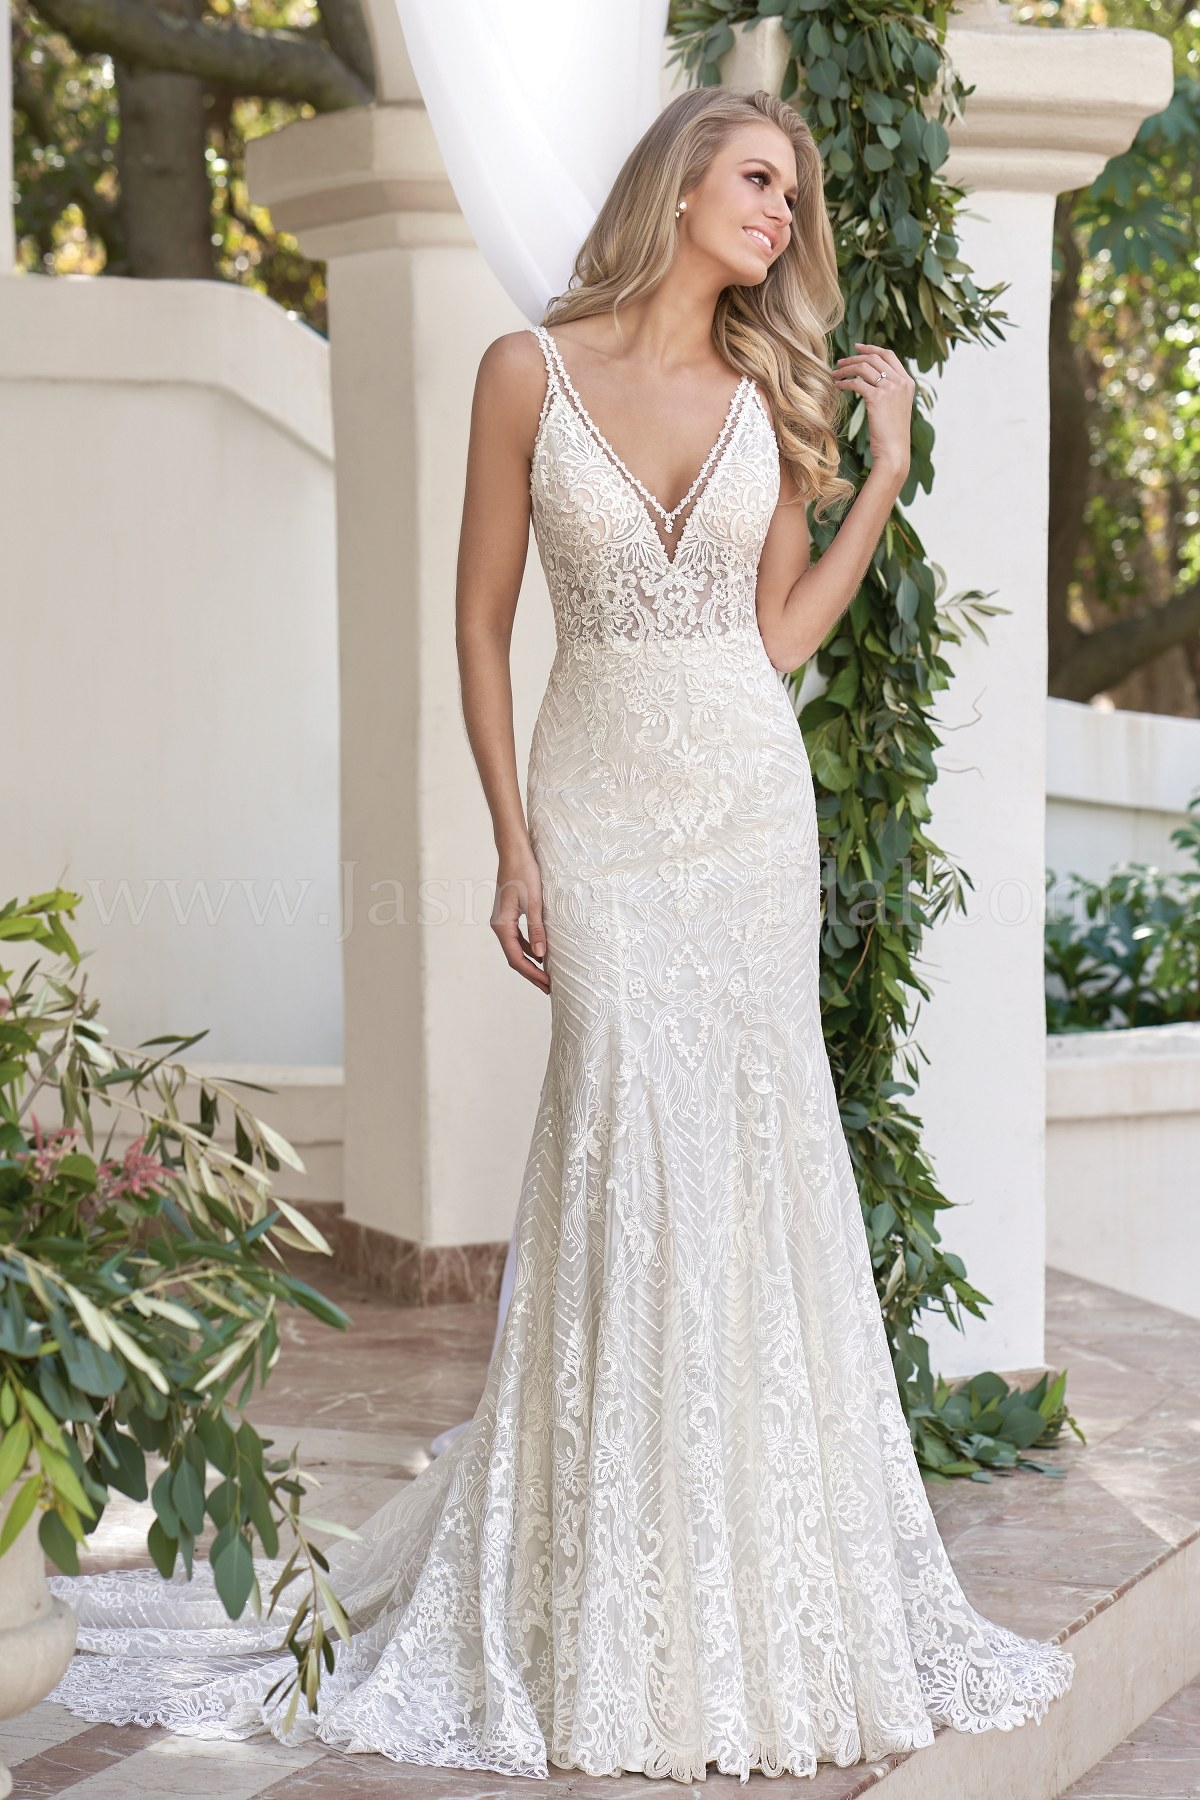 T202058 Illusion Bodice V Neck Embroidered Lace Sequin Tulle Wedding Dress